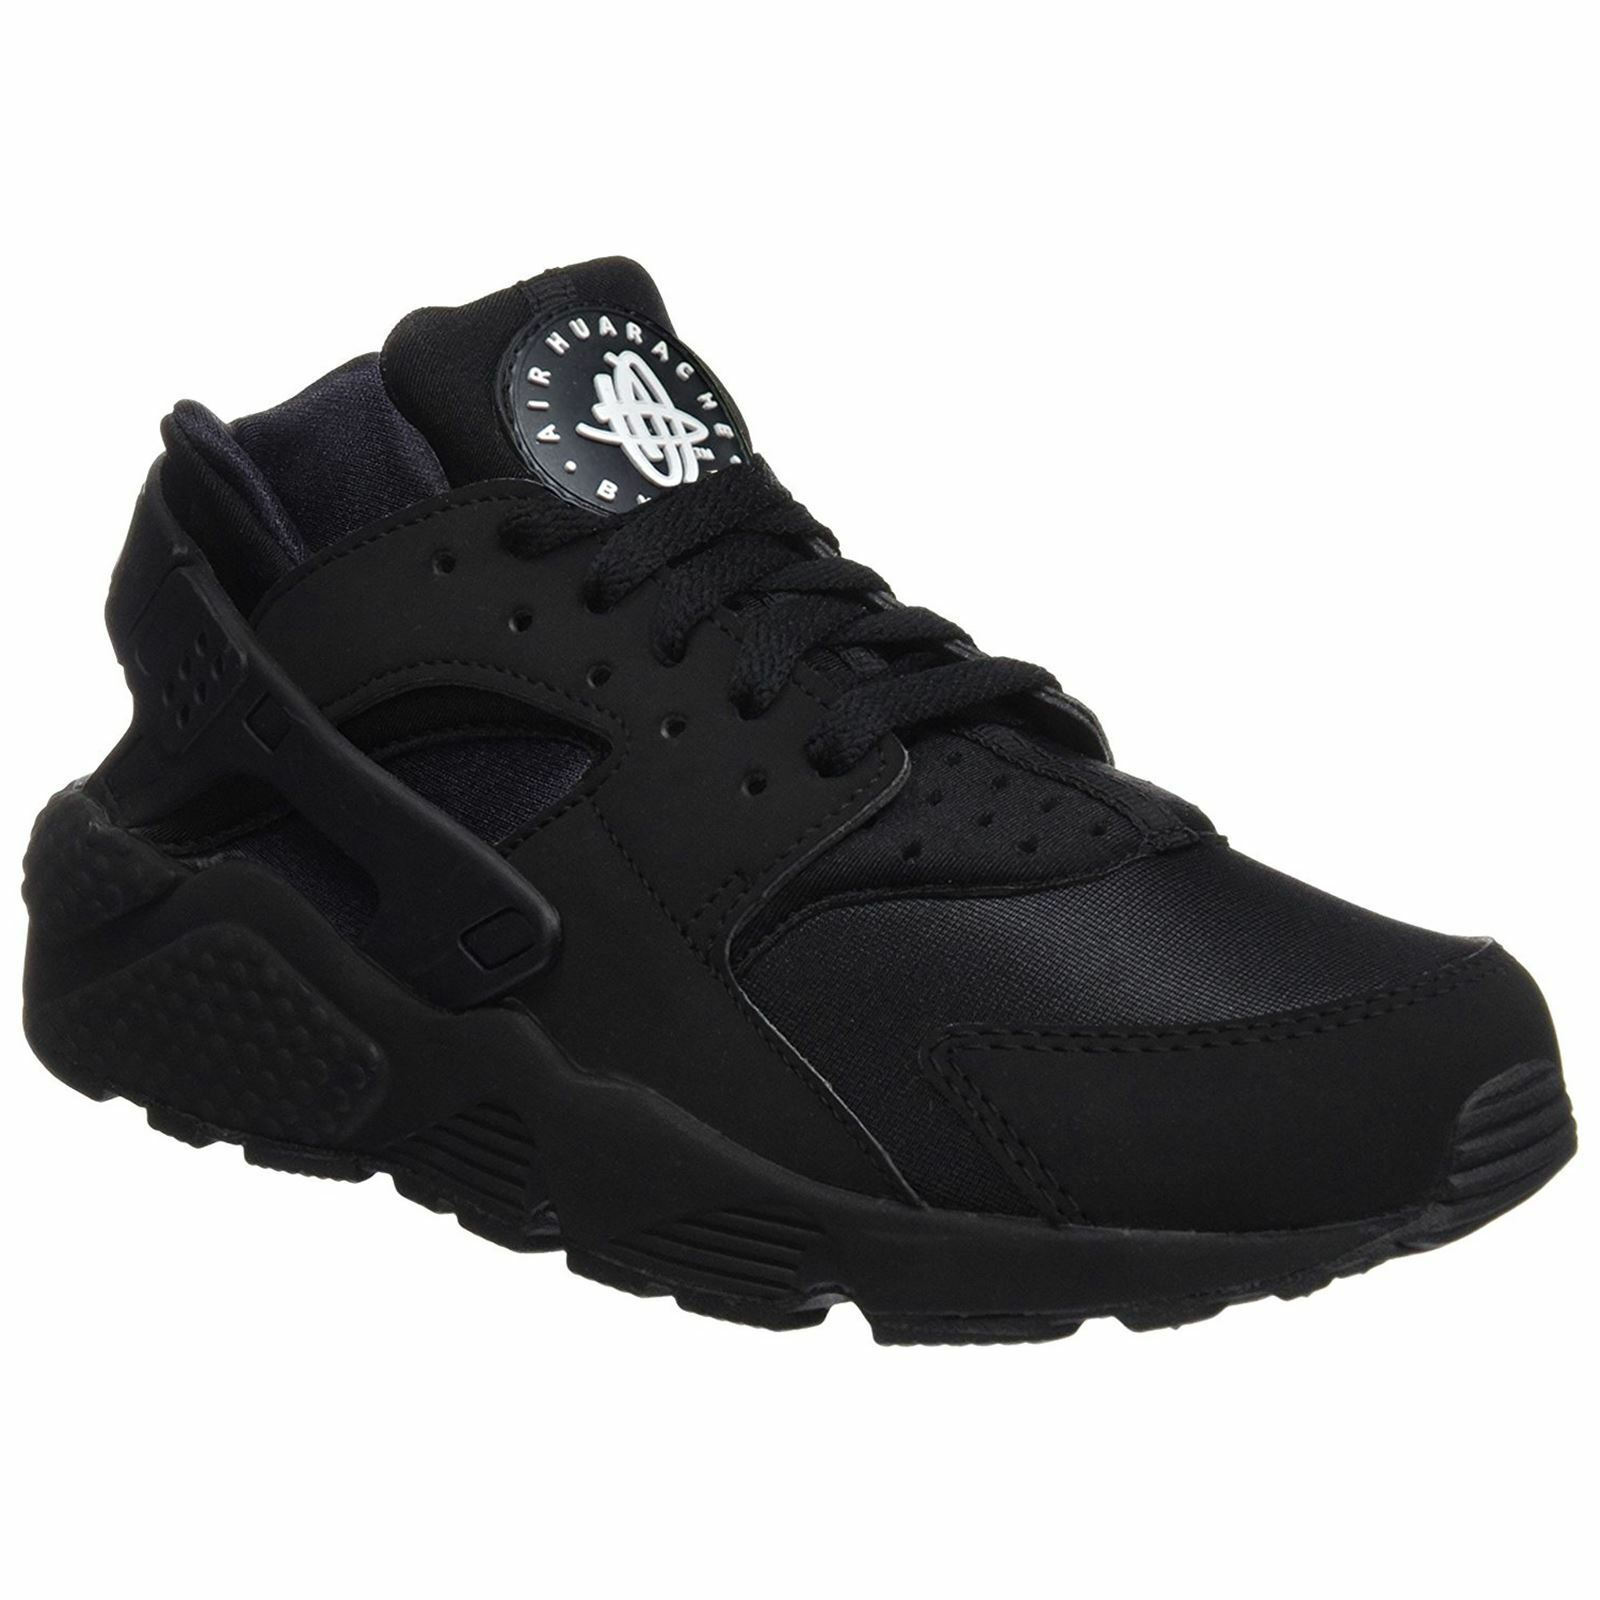 Nike Air Huarache Black Mens Mesh Lace-Up Running Sneakers Trainers